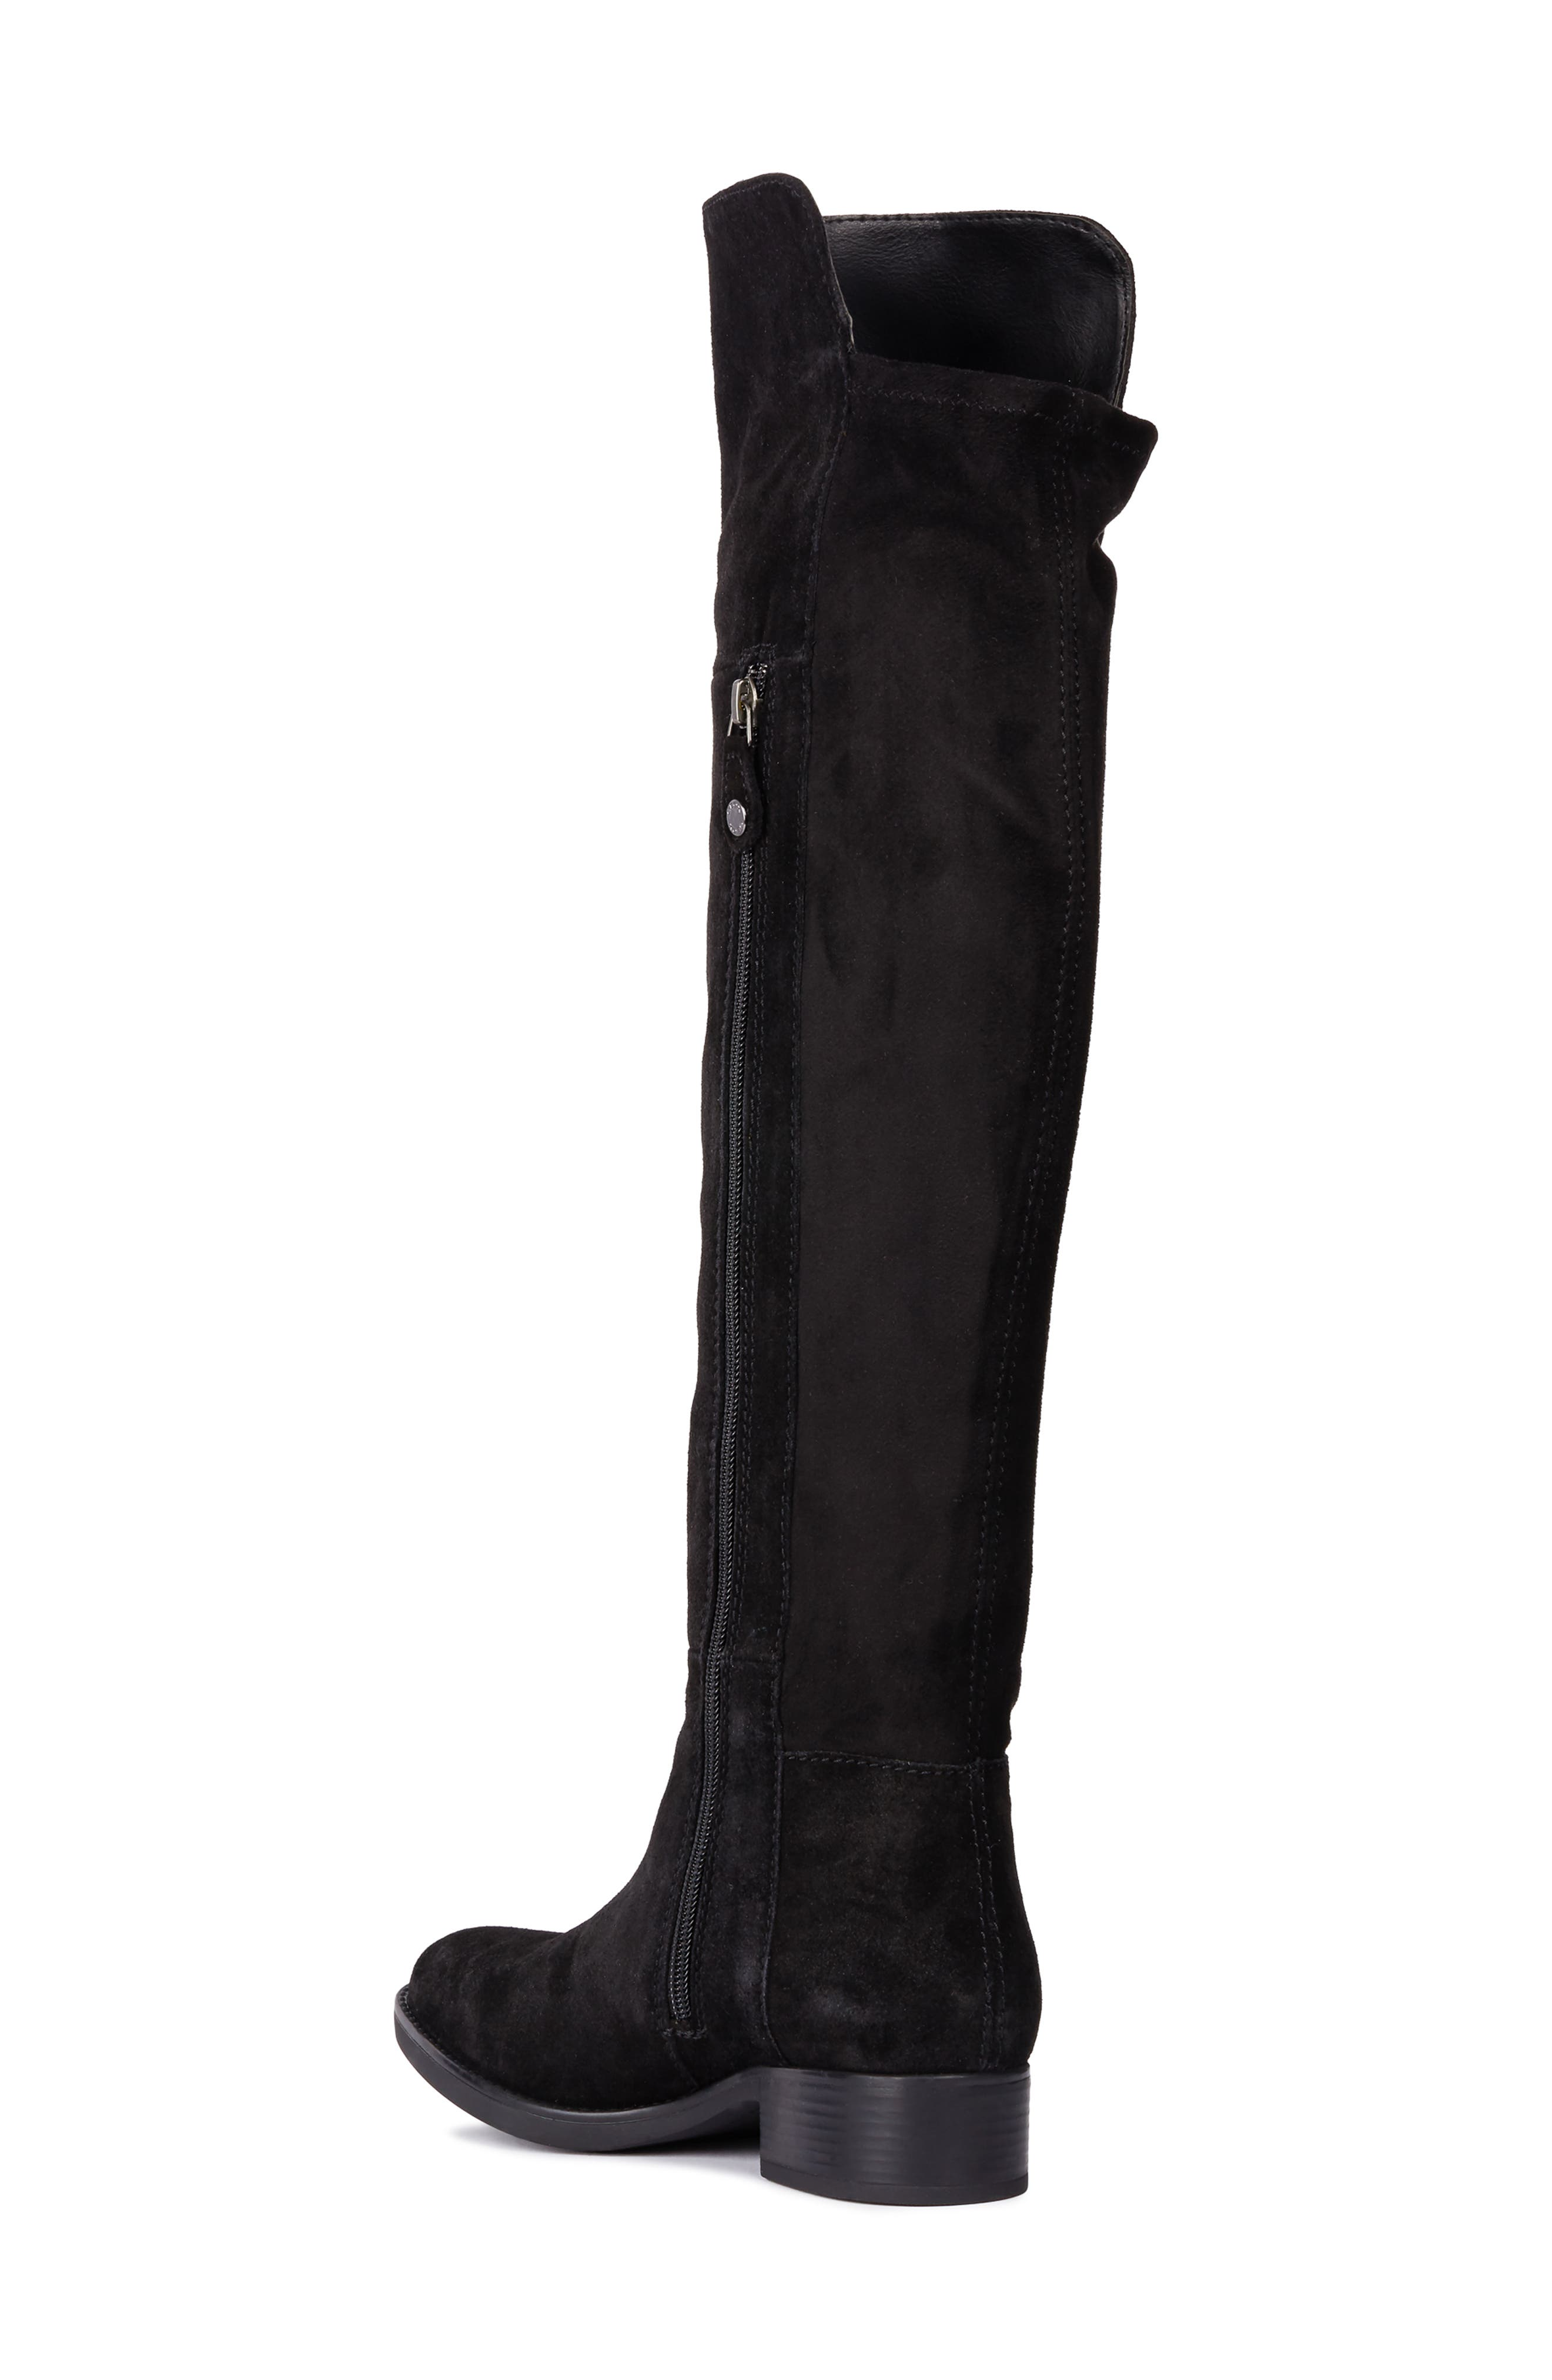 Felicity Knee High Boot,                             Alternate thumbnail 2, color,                             BLACK SUEDE